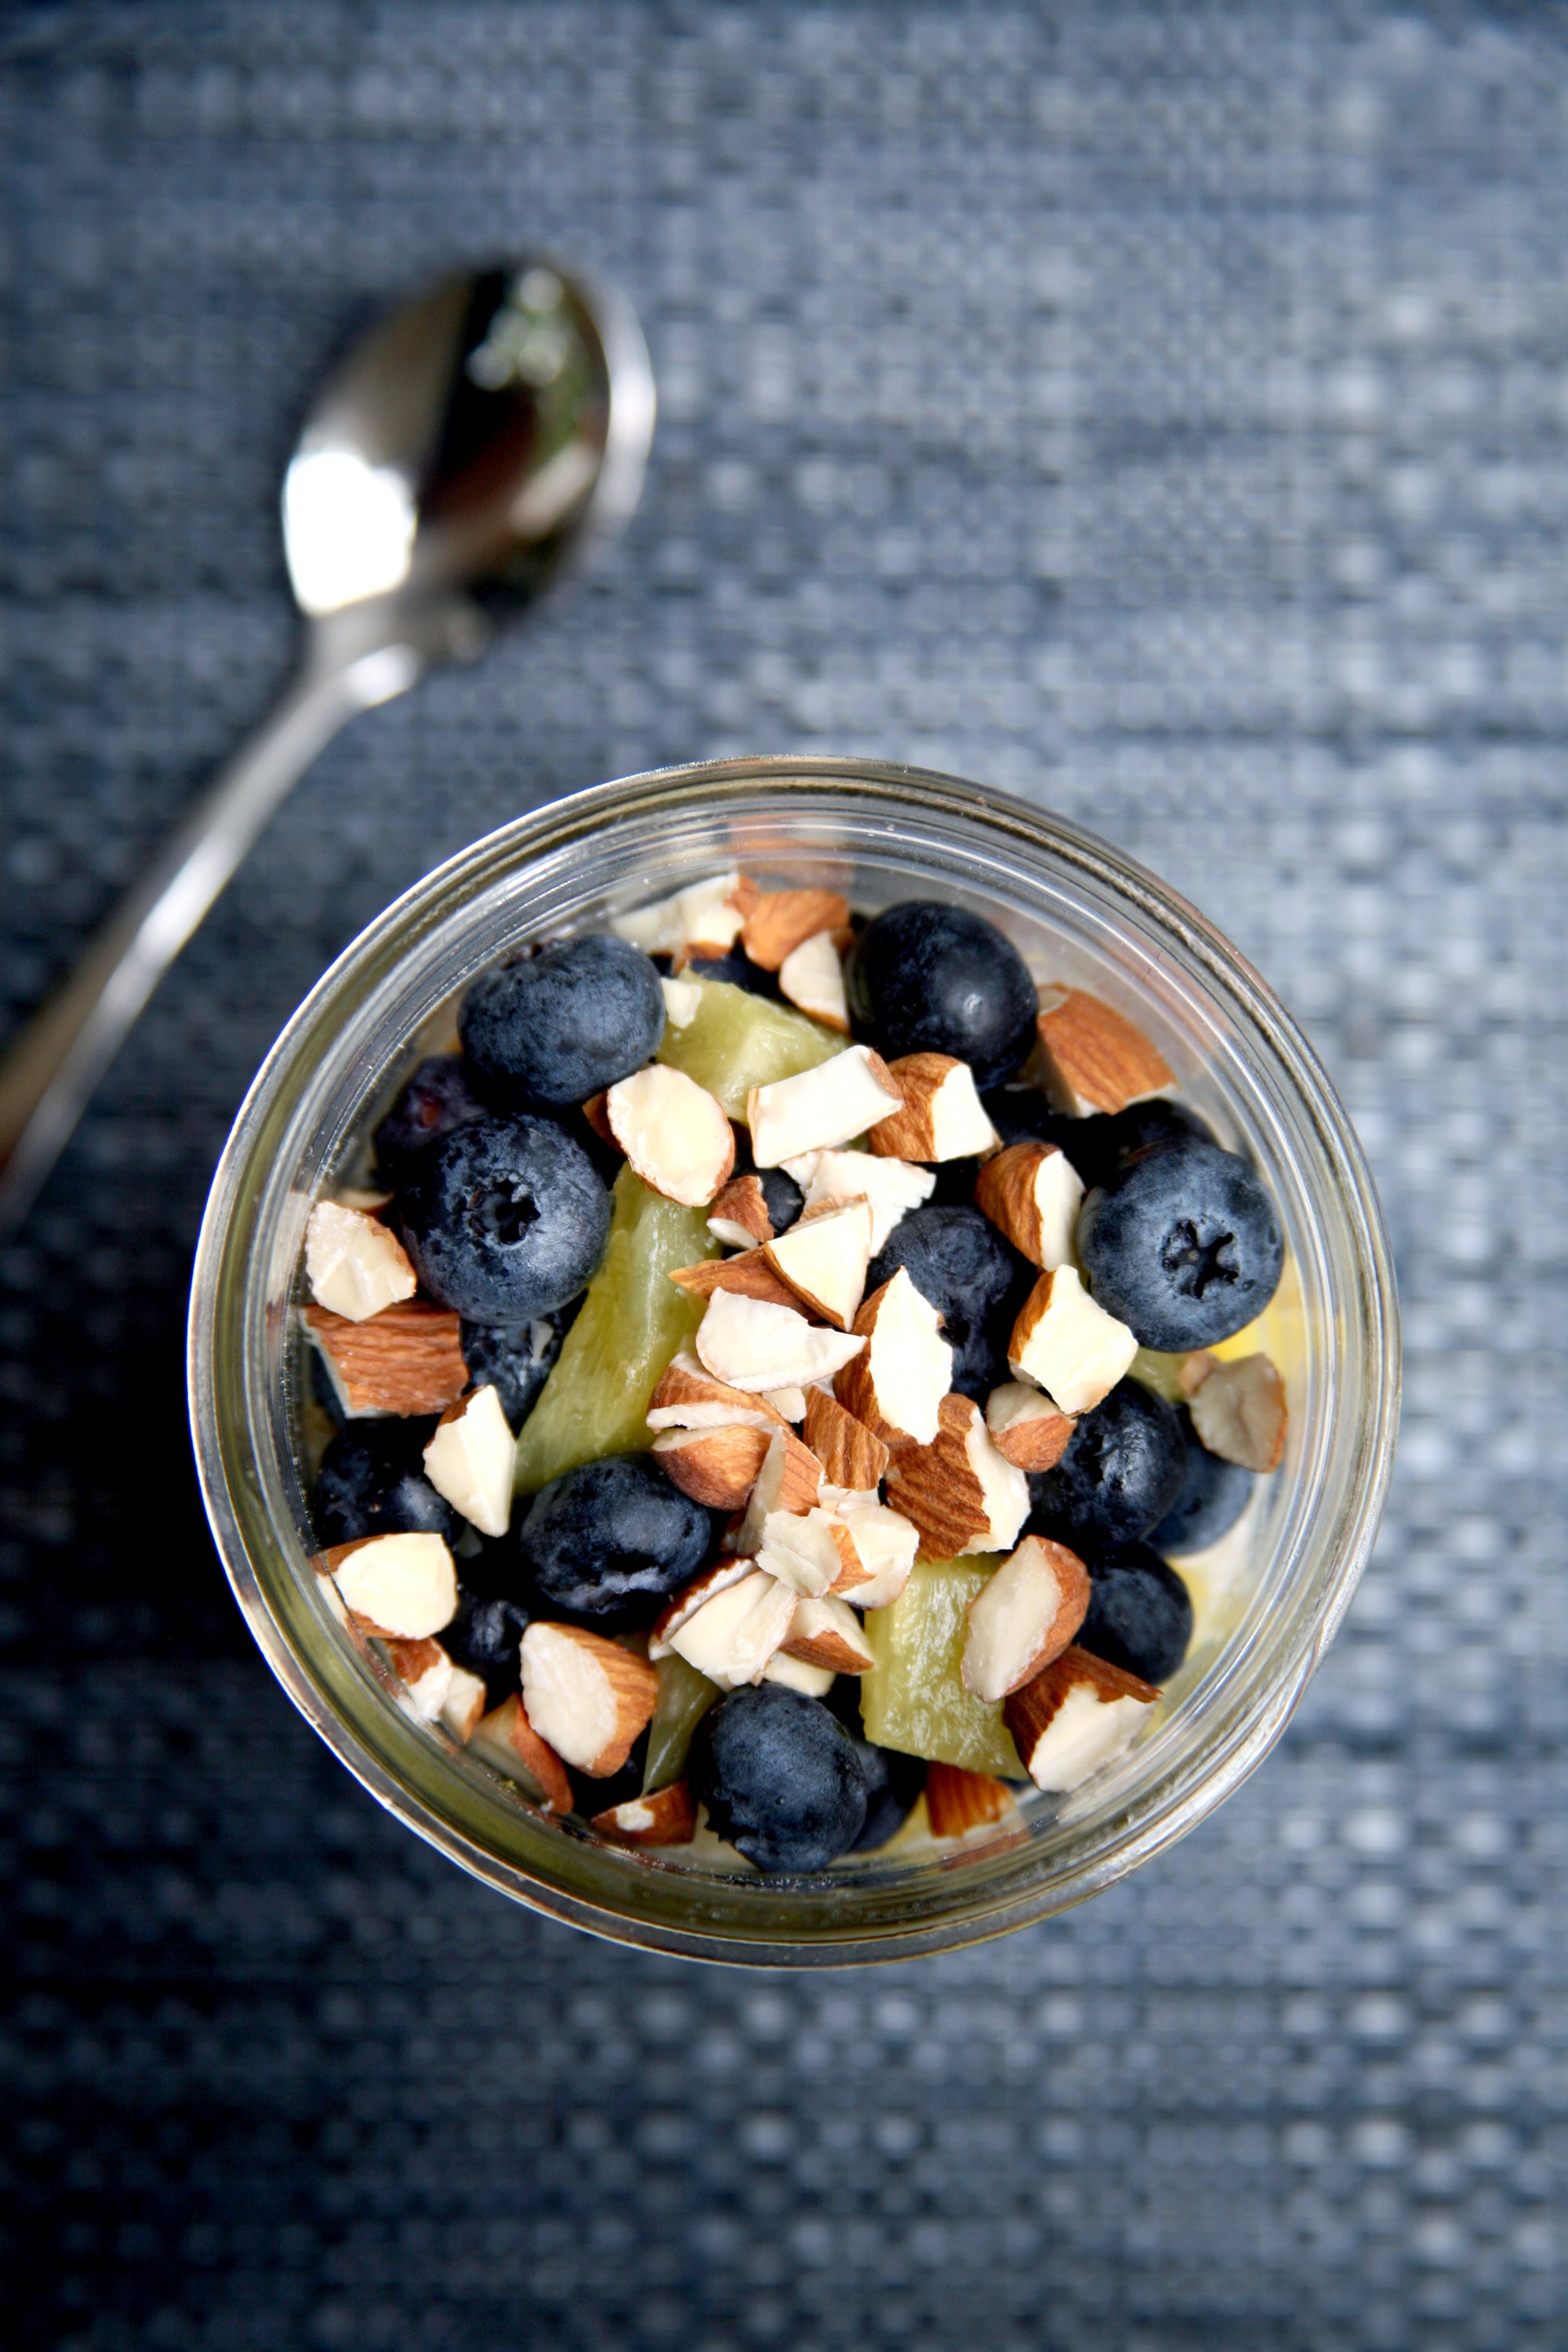 Make This Tonight to Prevent Tomorrow's Bloated Belly